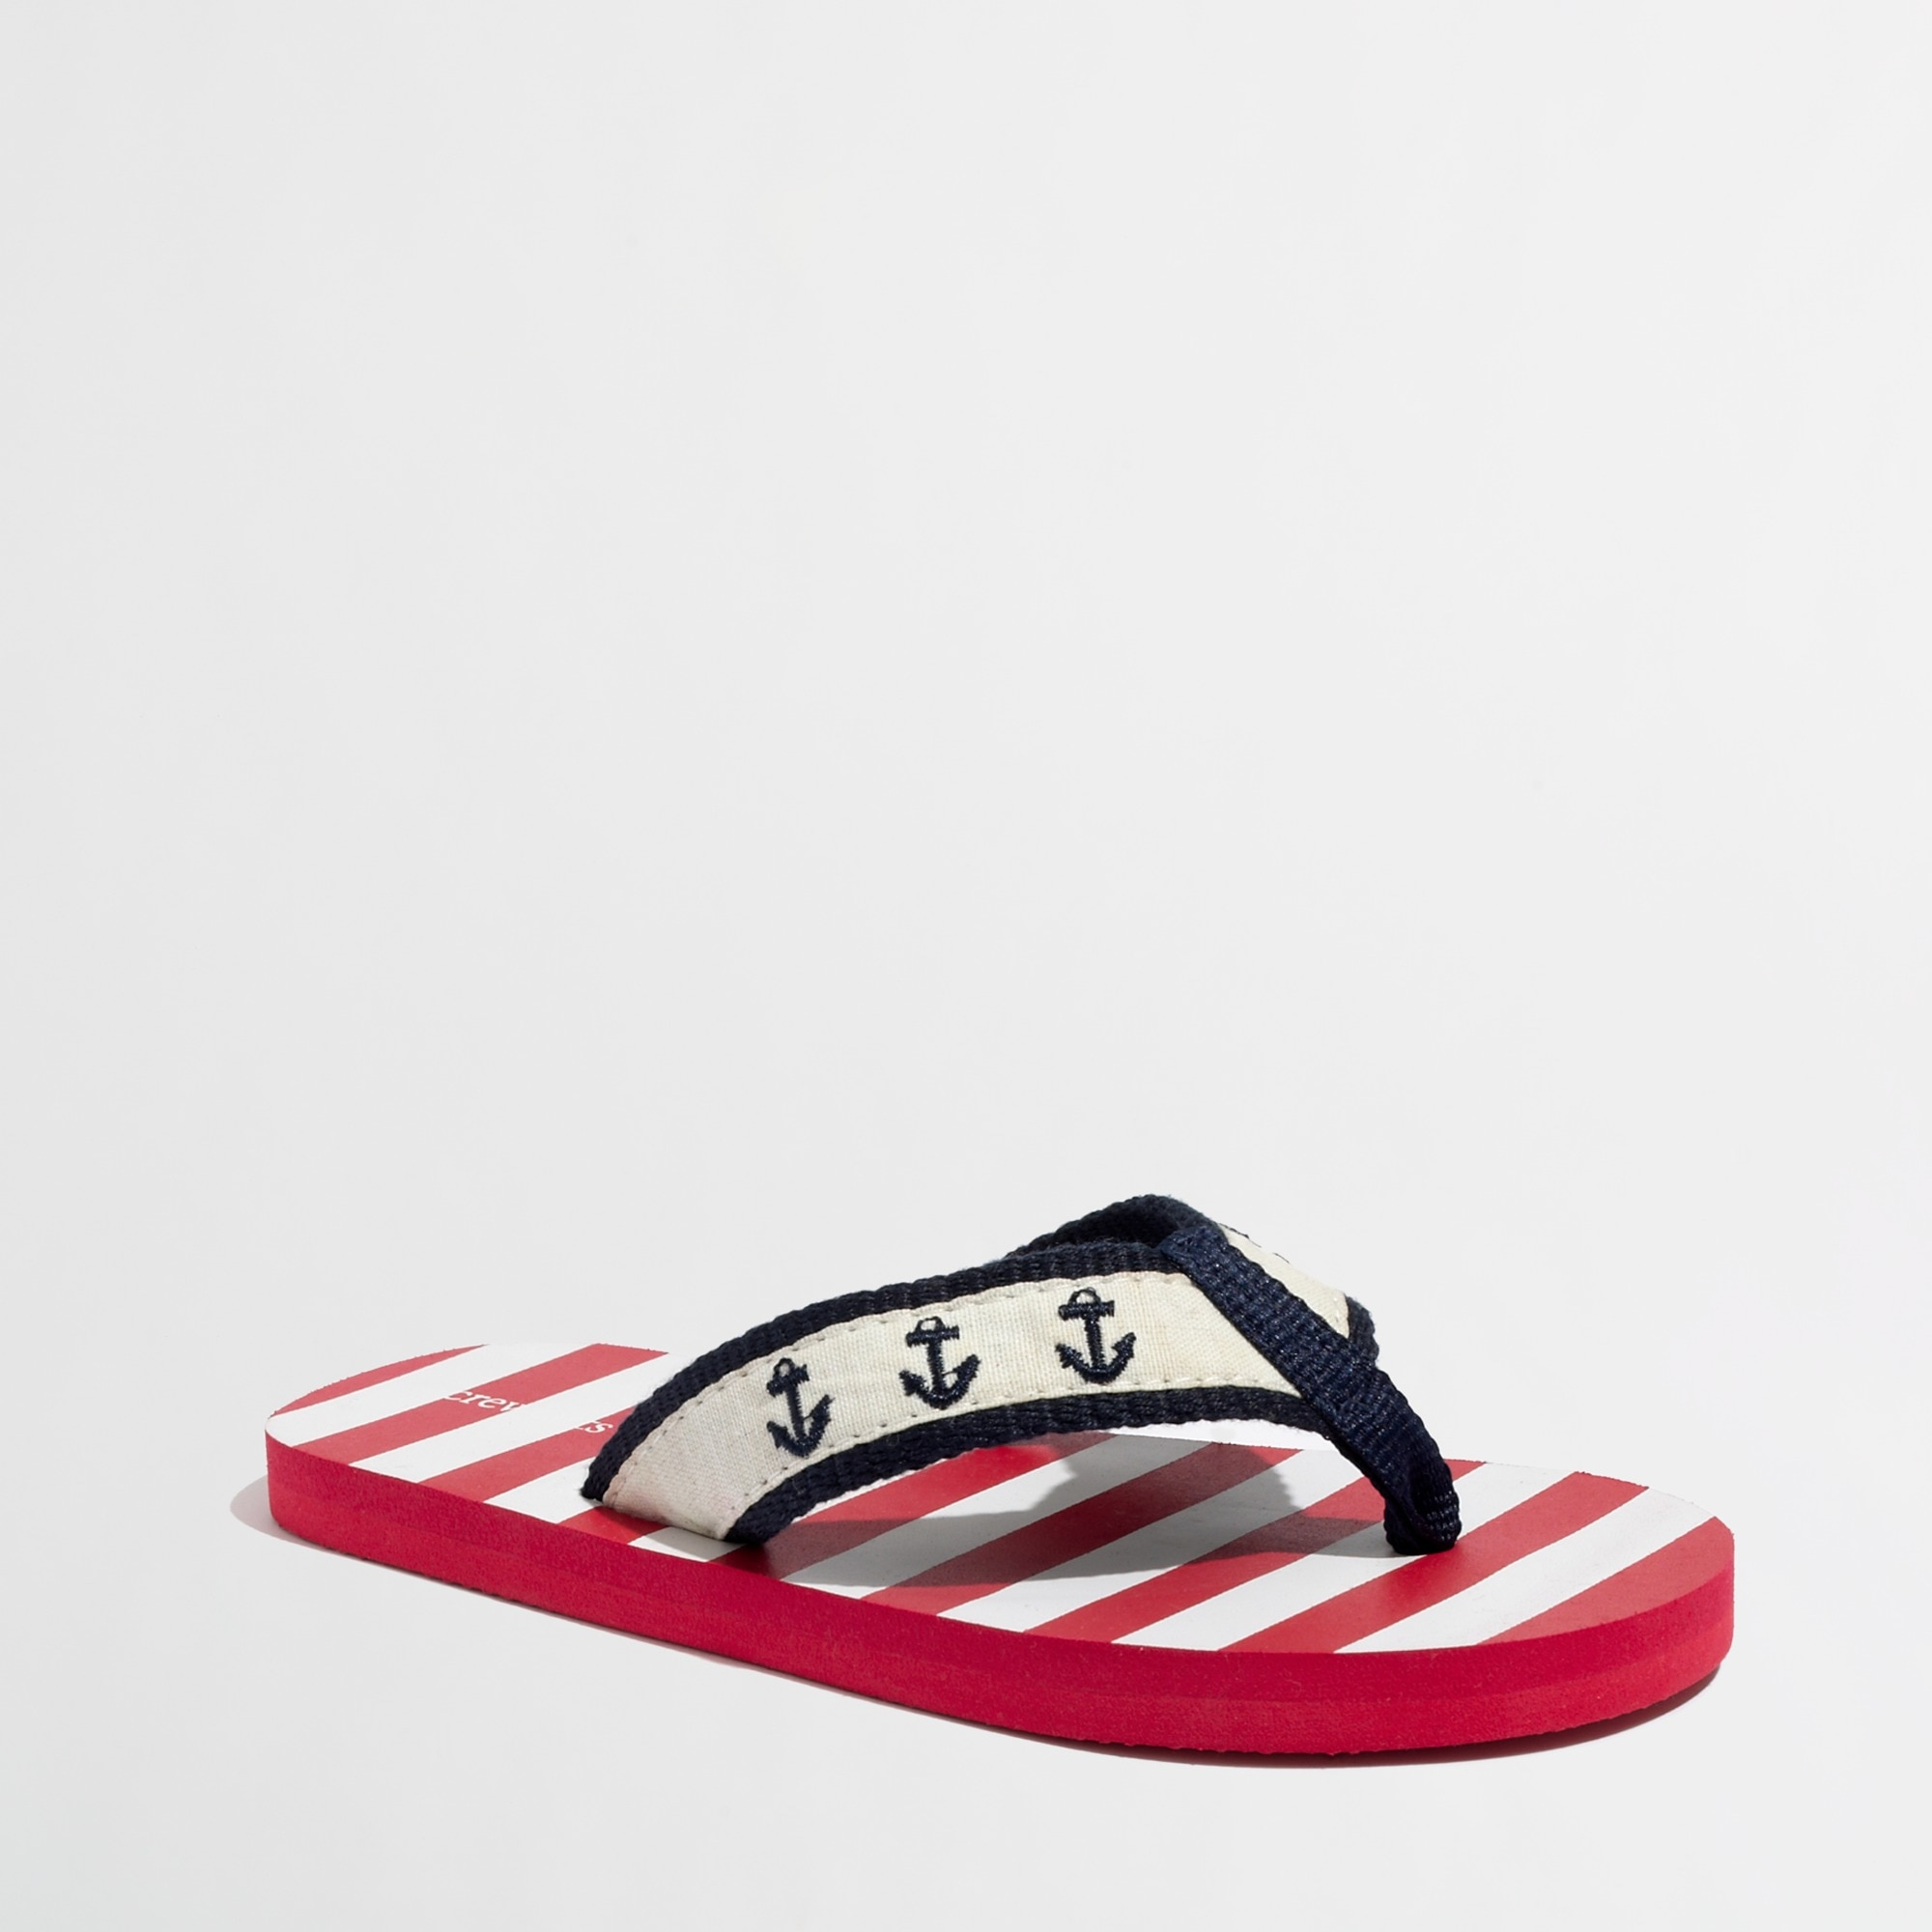 Image 1 for Factory boys' stripe critter flip-flops